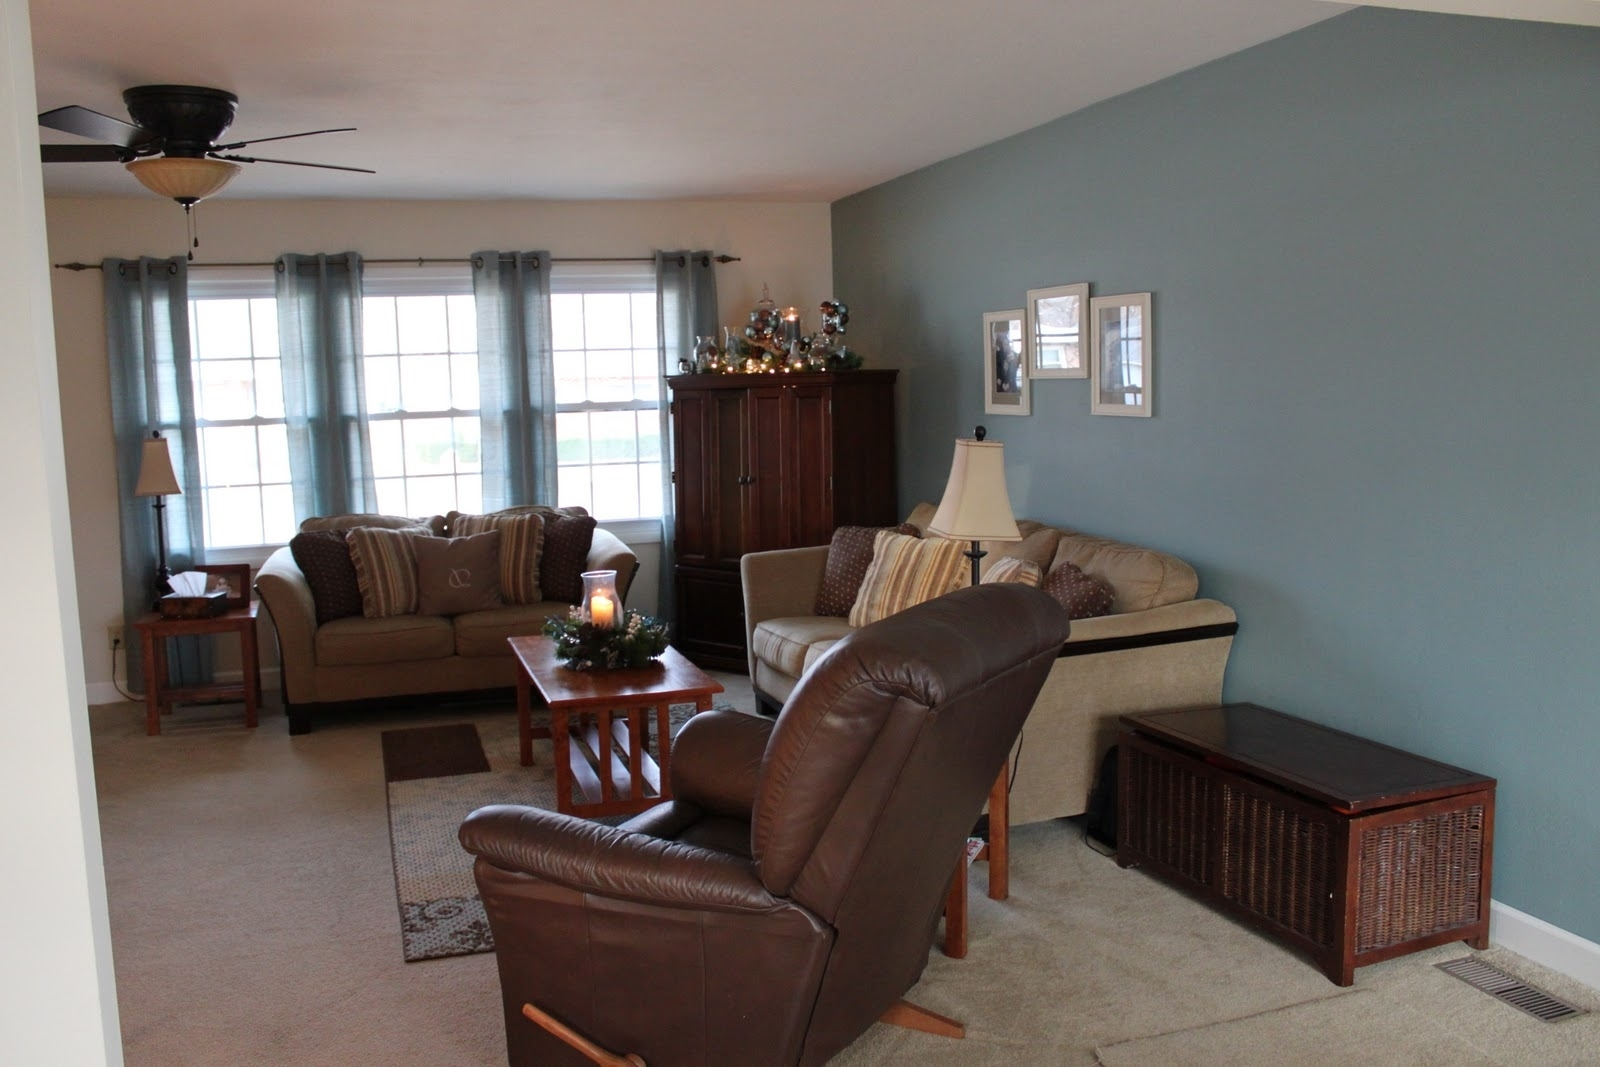 Widely Used Designs : Accent Colors For Taupe Walls Also Accent Colors For A Regarding Wall Accents For Tan Room (View 6 of 15)